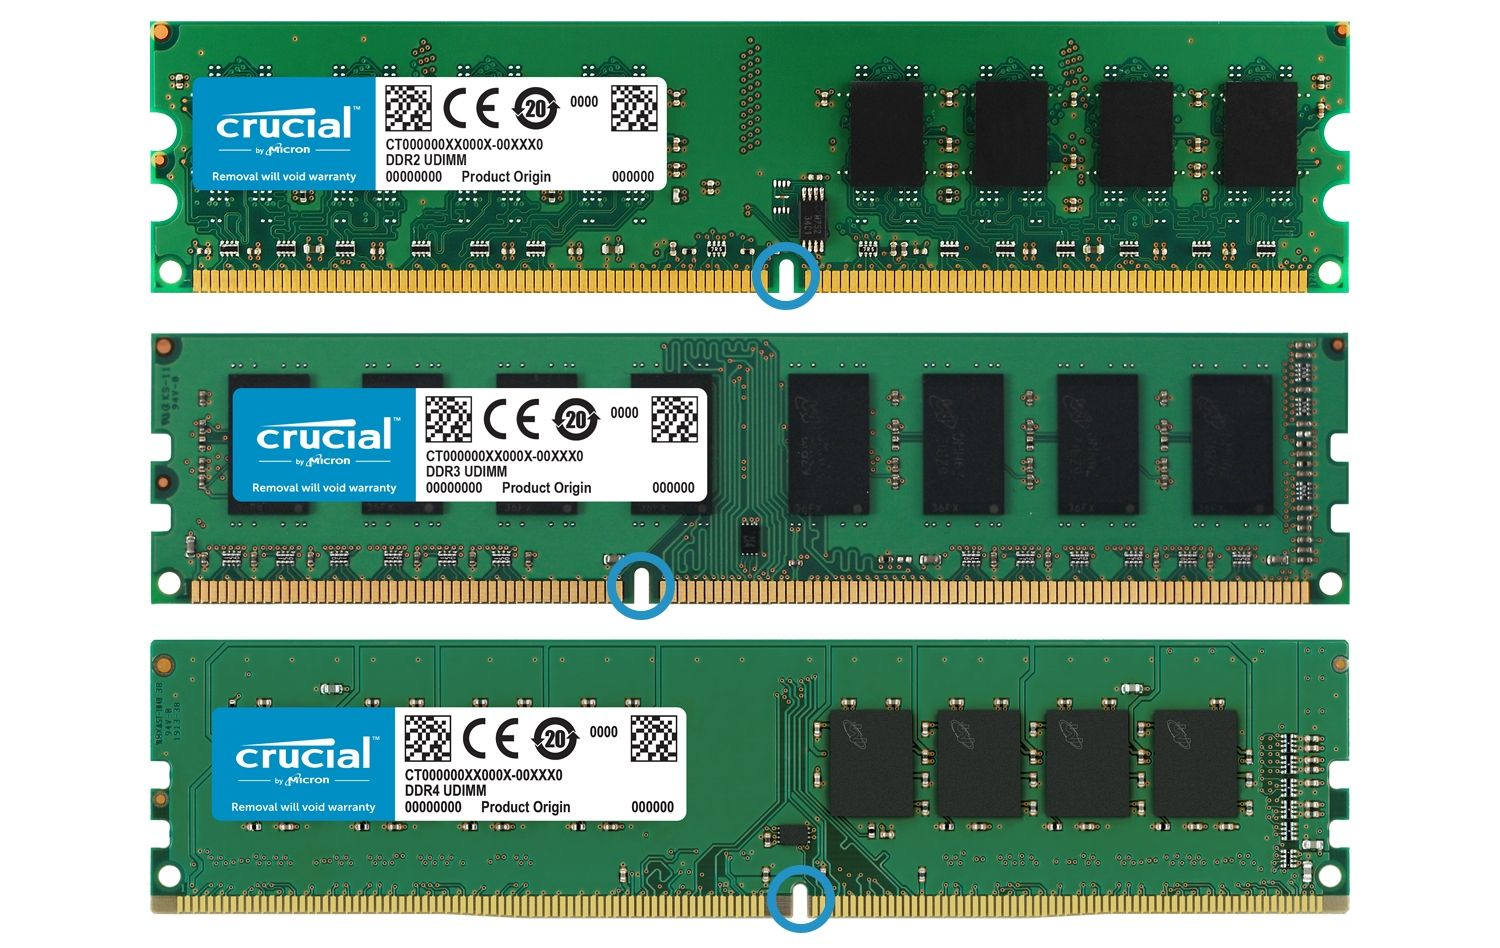 Three generations of Crucial RAM memory modules are placed next to each other to highlight the changes in the physical shape of the memory in each generation